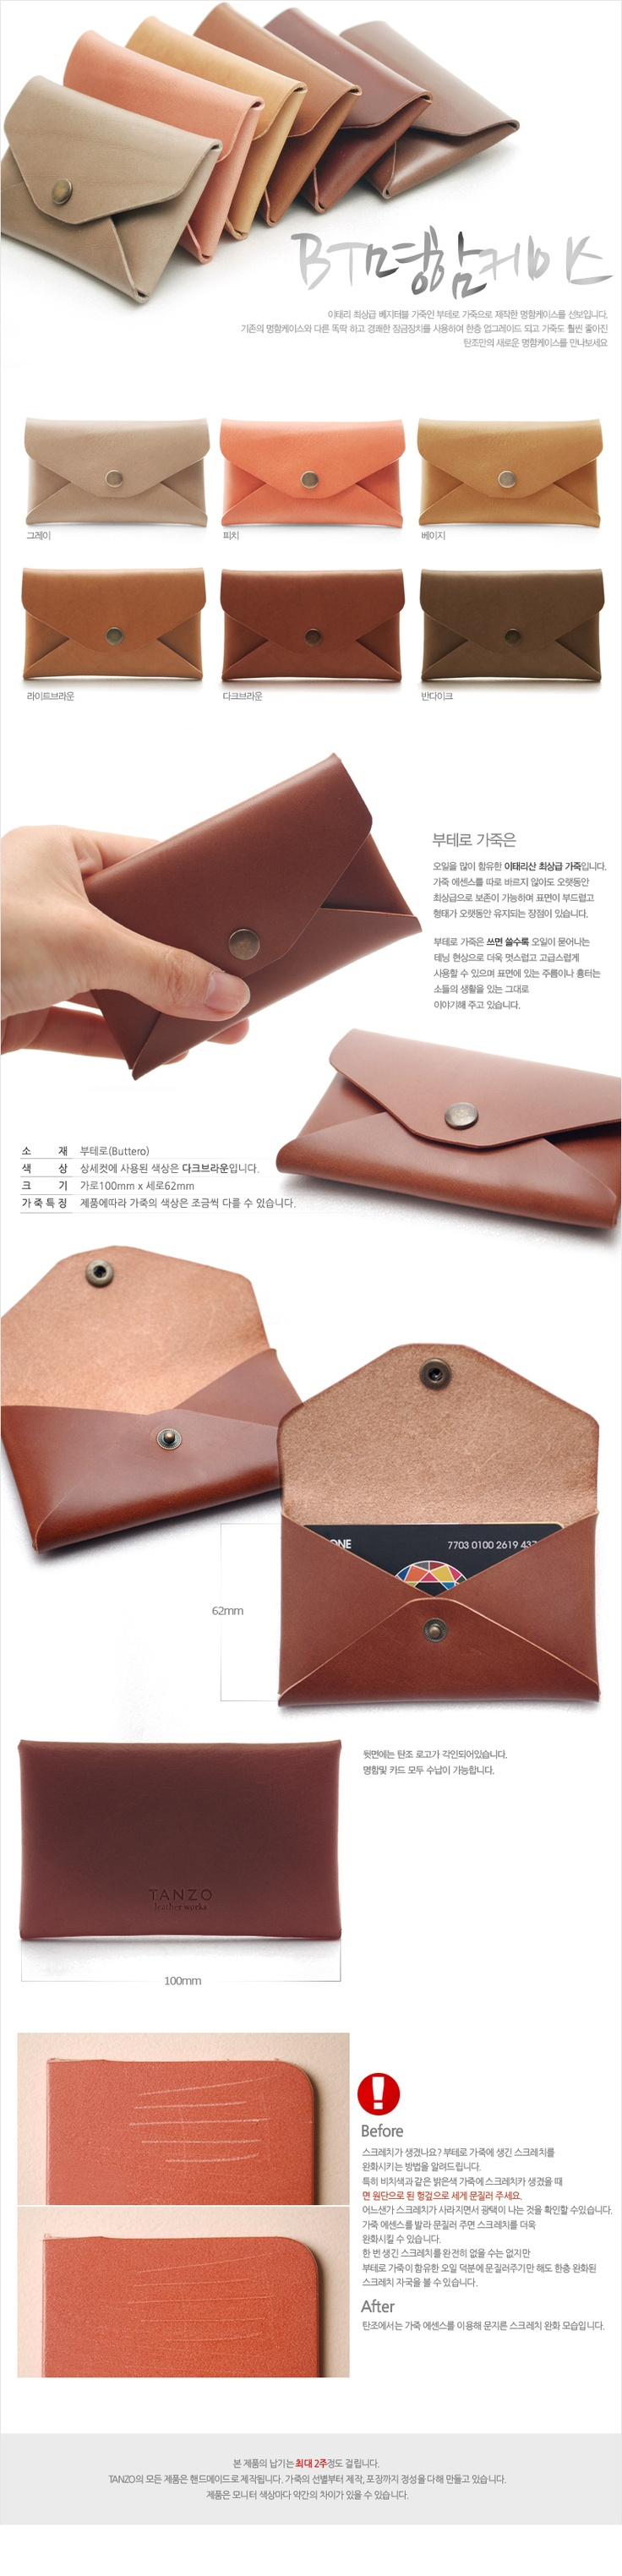 40 Best Leather Projects Images On Pinterest Leather Projects